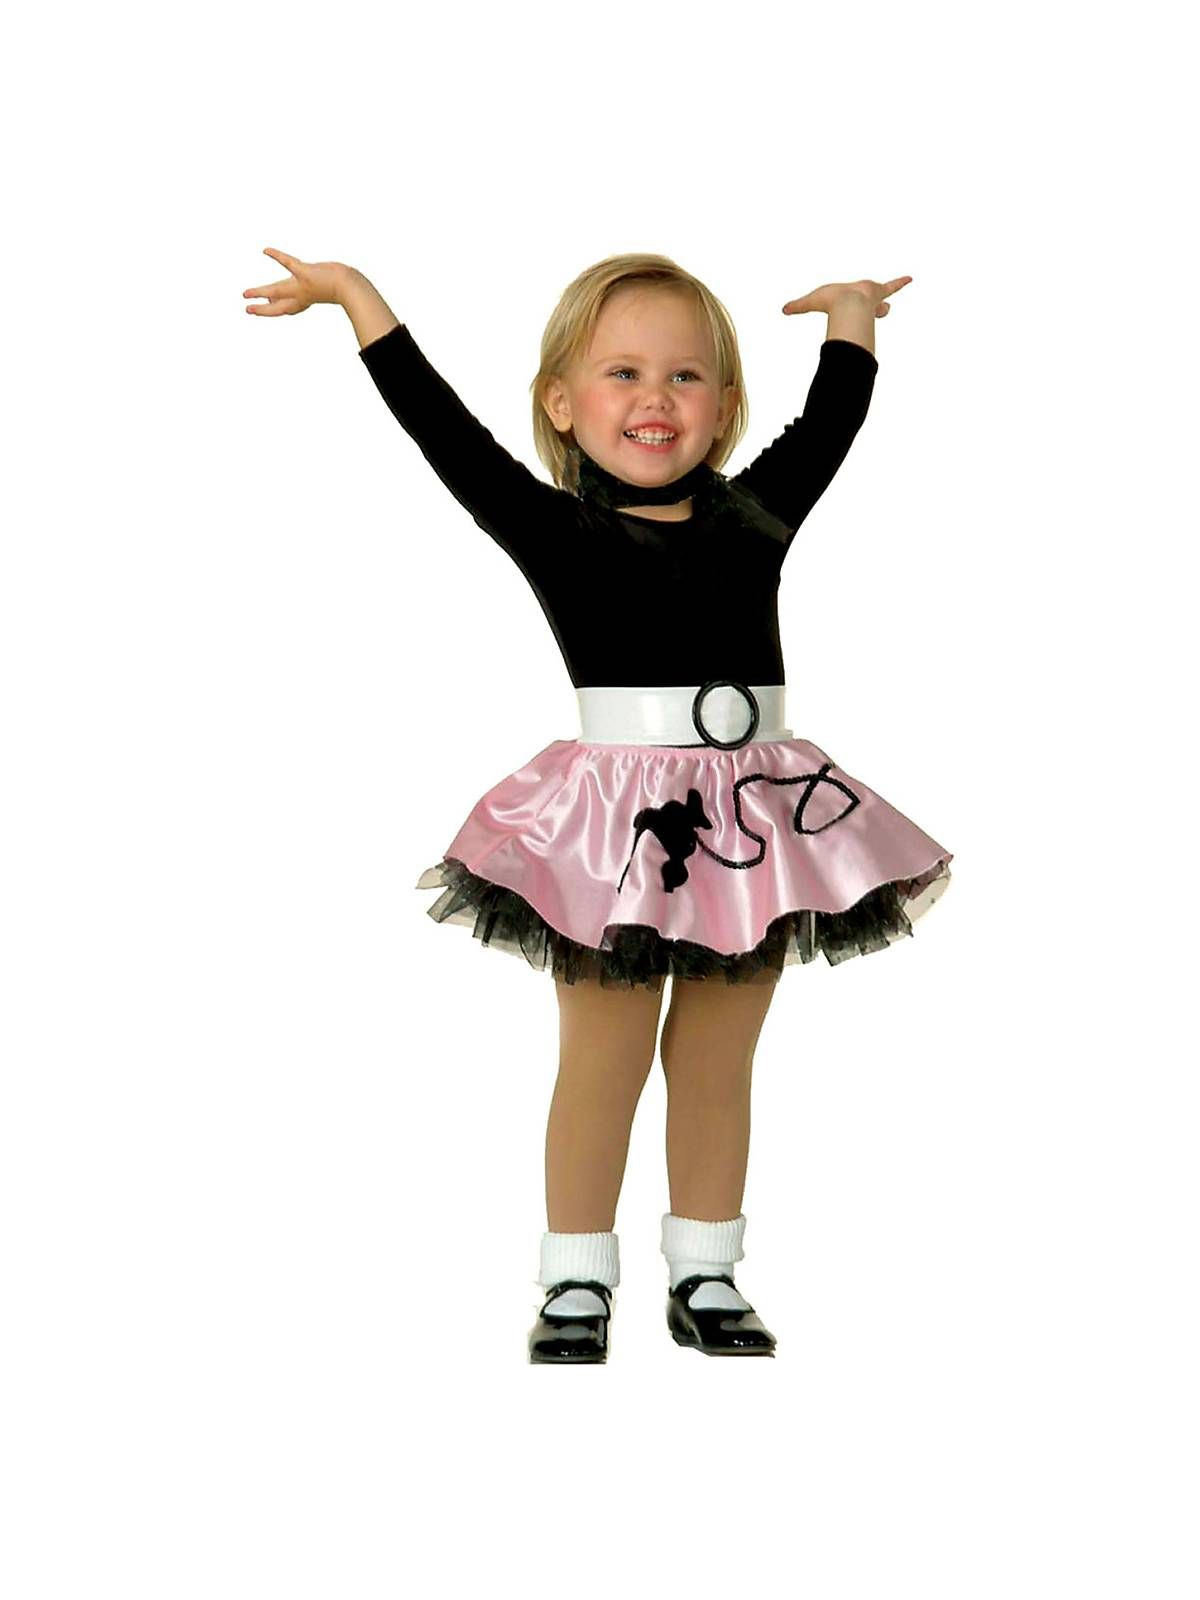 Bandstand Baby Costume | Wholesale 50s Costumes for Infants u0026 Toddlers  sc 1 st  Pinterest & Bandstand Baby Costume | Wholesale 50s Costumes for Infants ...